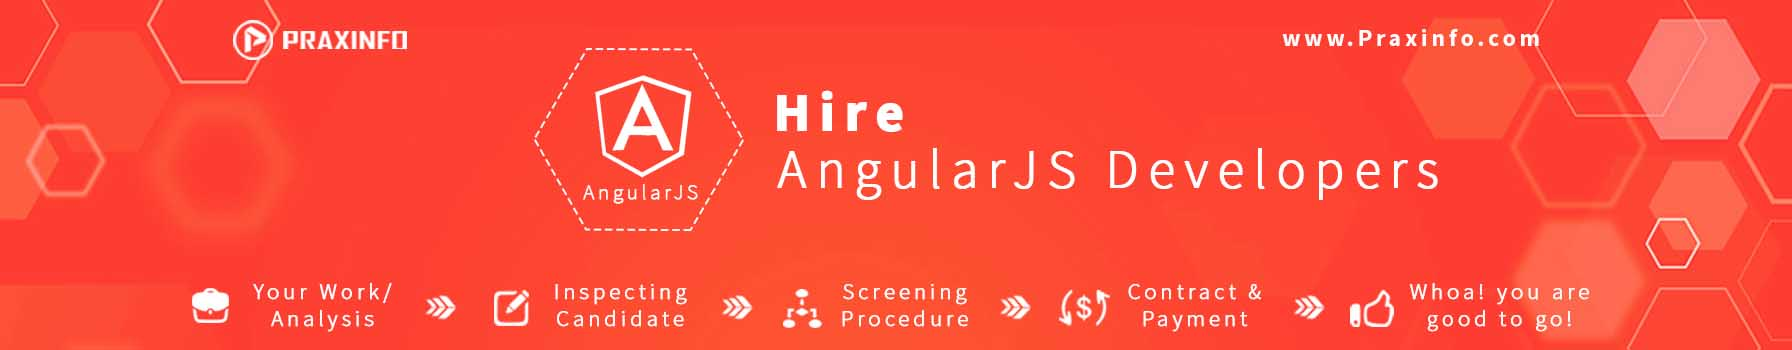 hire-AngularJS-developer.jpg